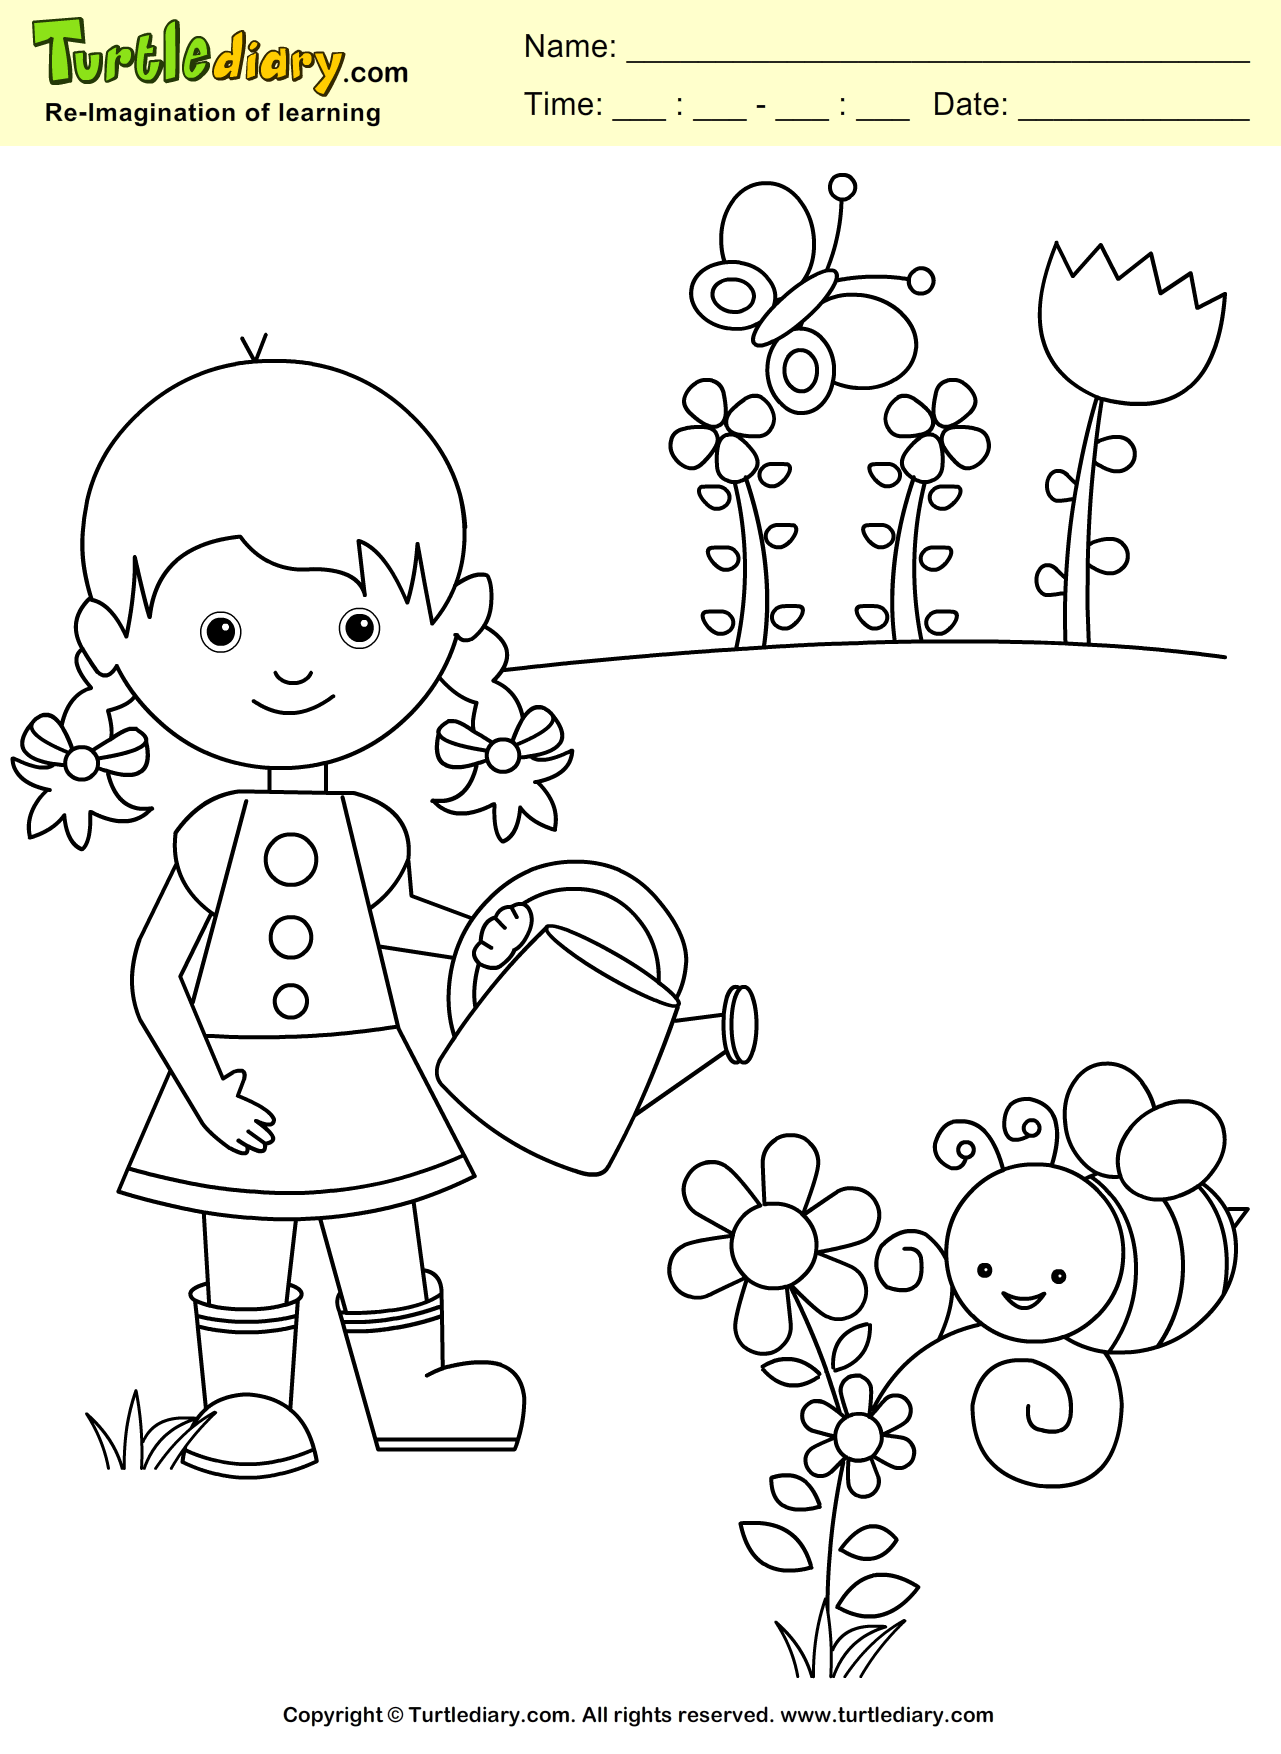 20 Ideas For Gaden Week Preschool Coloring Sheets